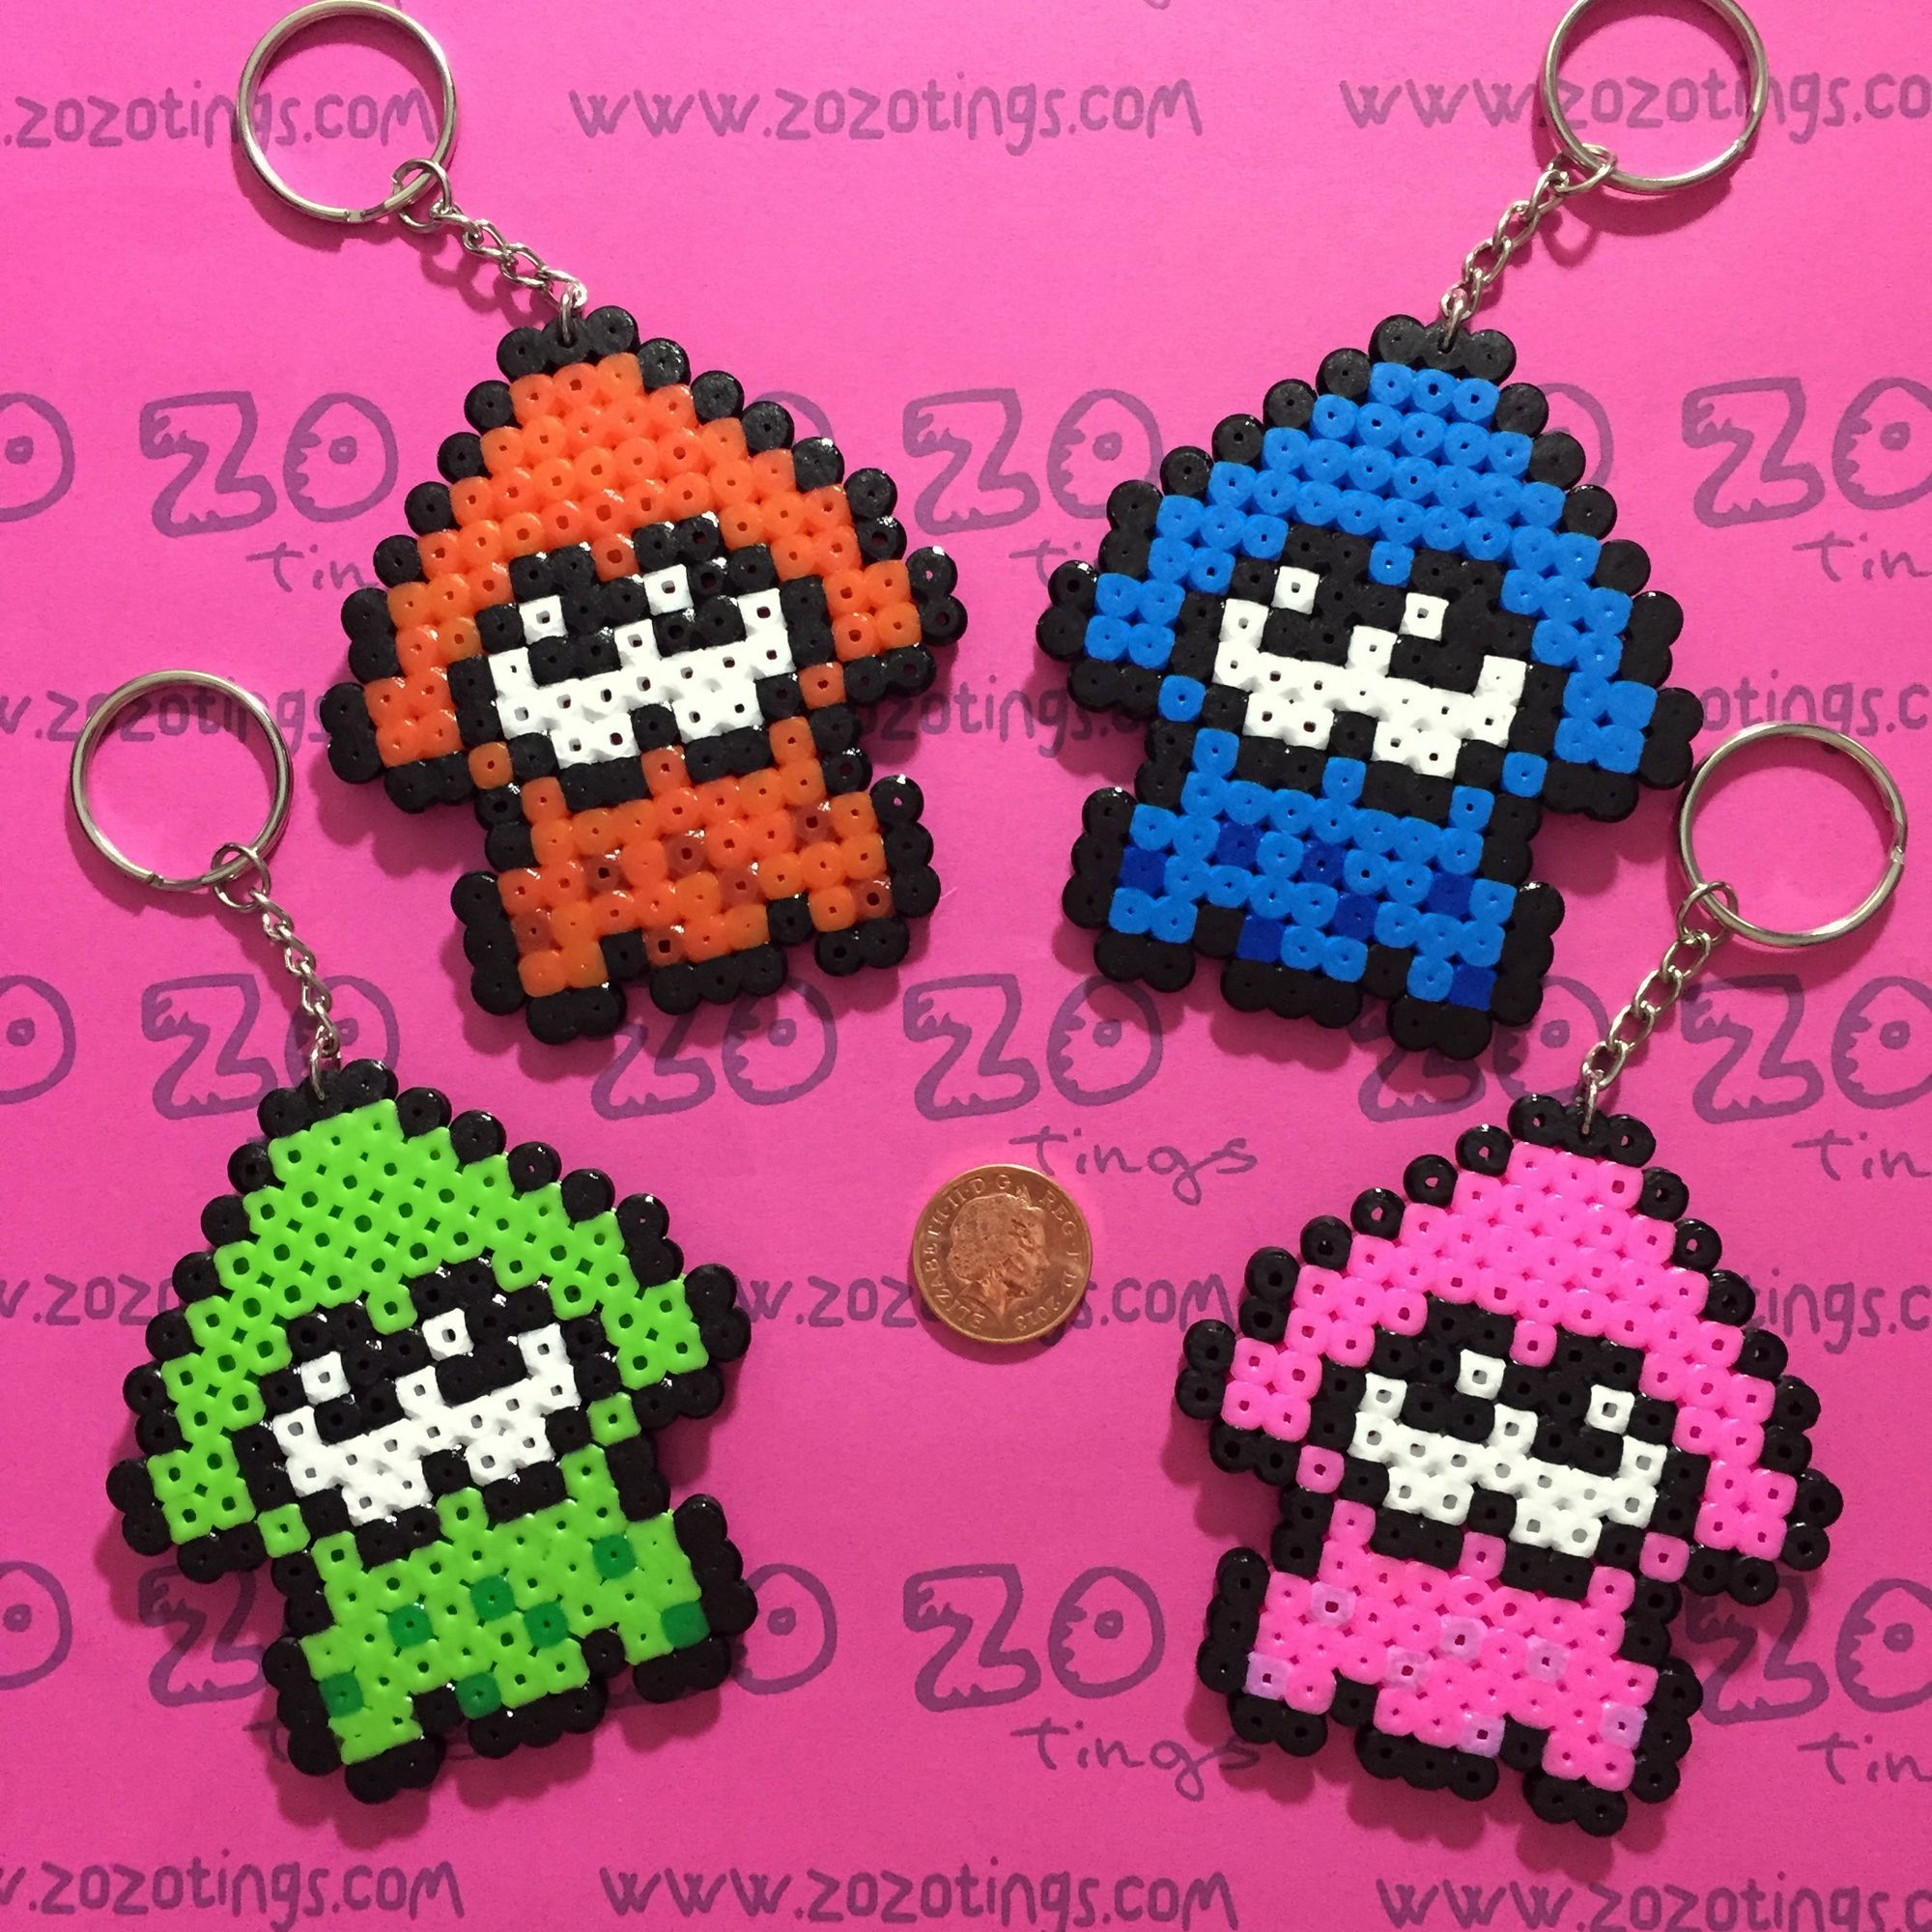 Splatoon Keyrings Hama Beads By Zo Zo Tings Hama Beads